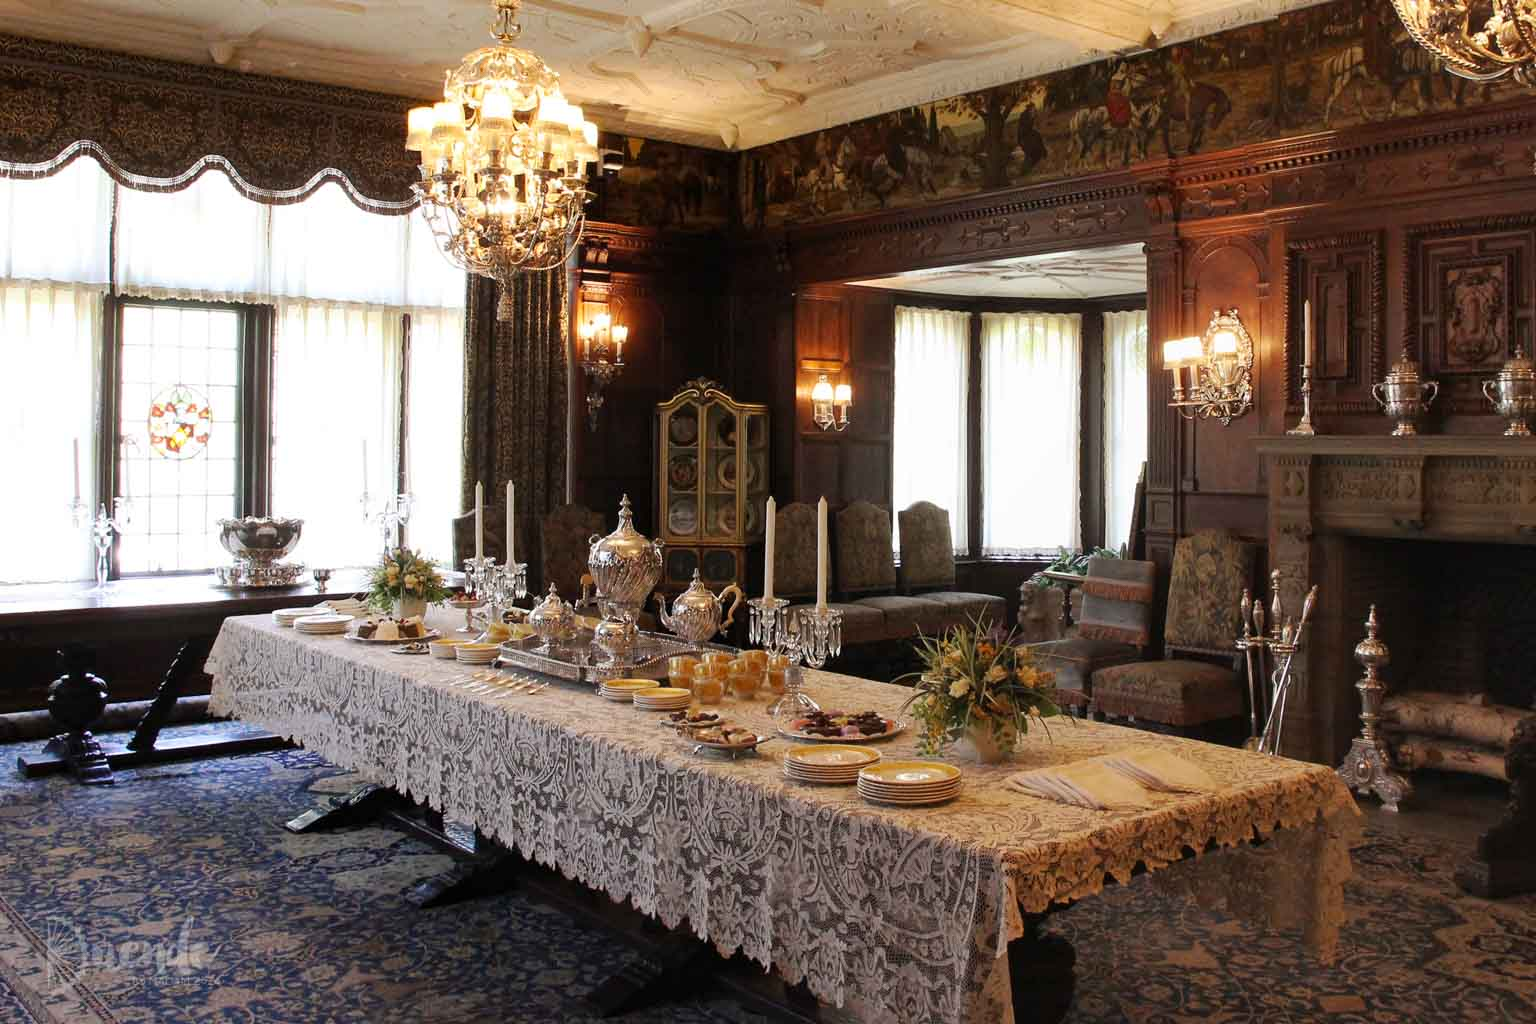 Formal dining room with large banquet table at the centre